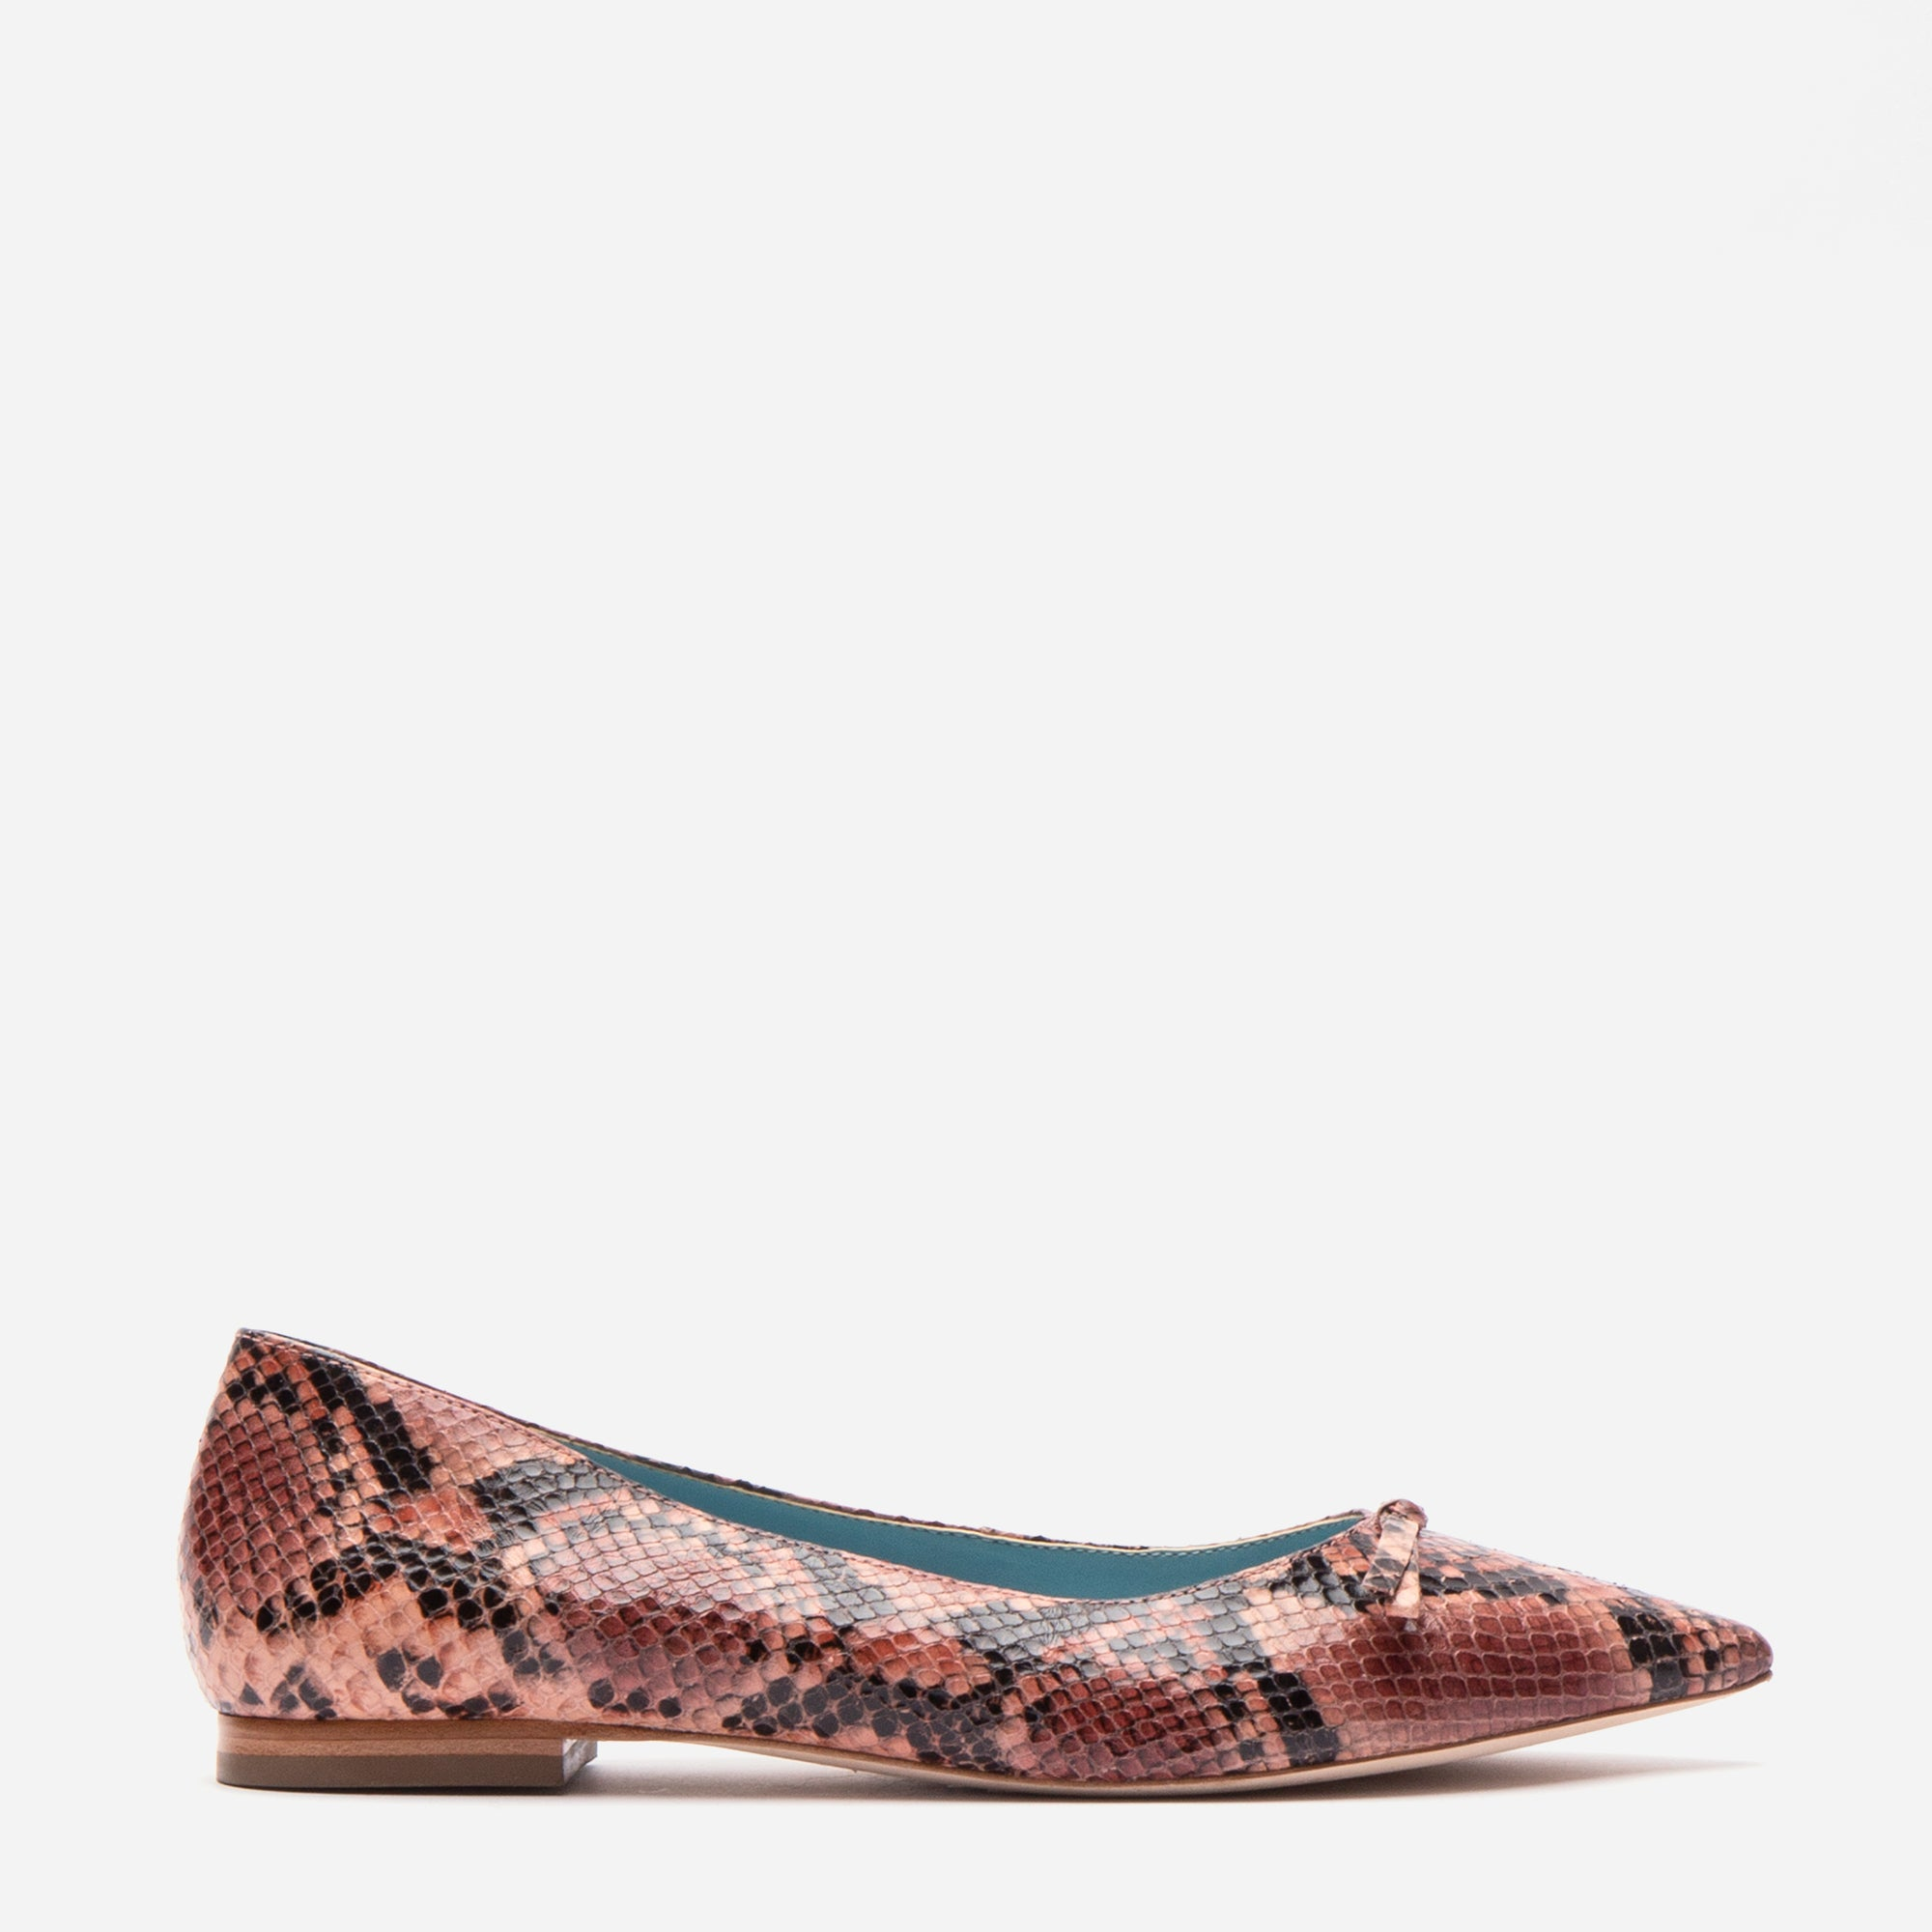 Paige Bow Flats Printed Snake Pink